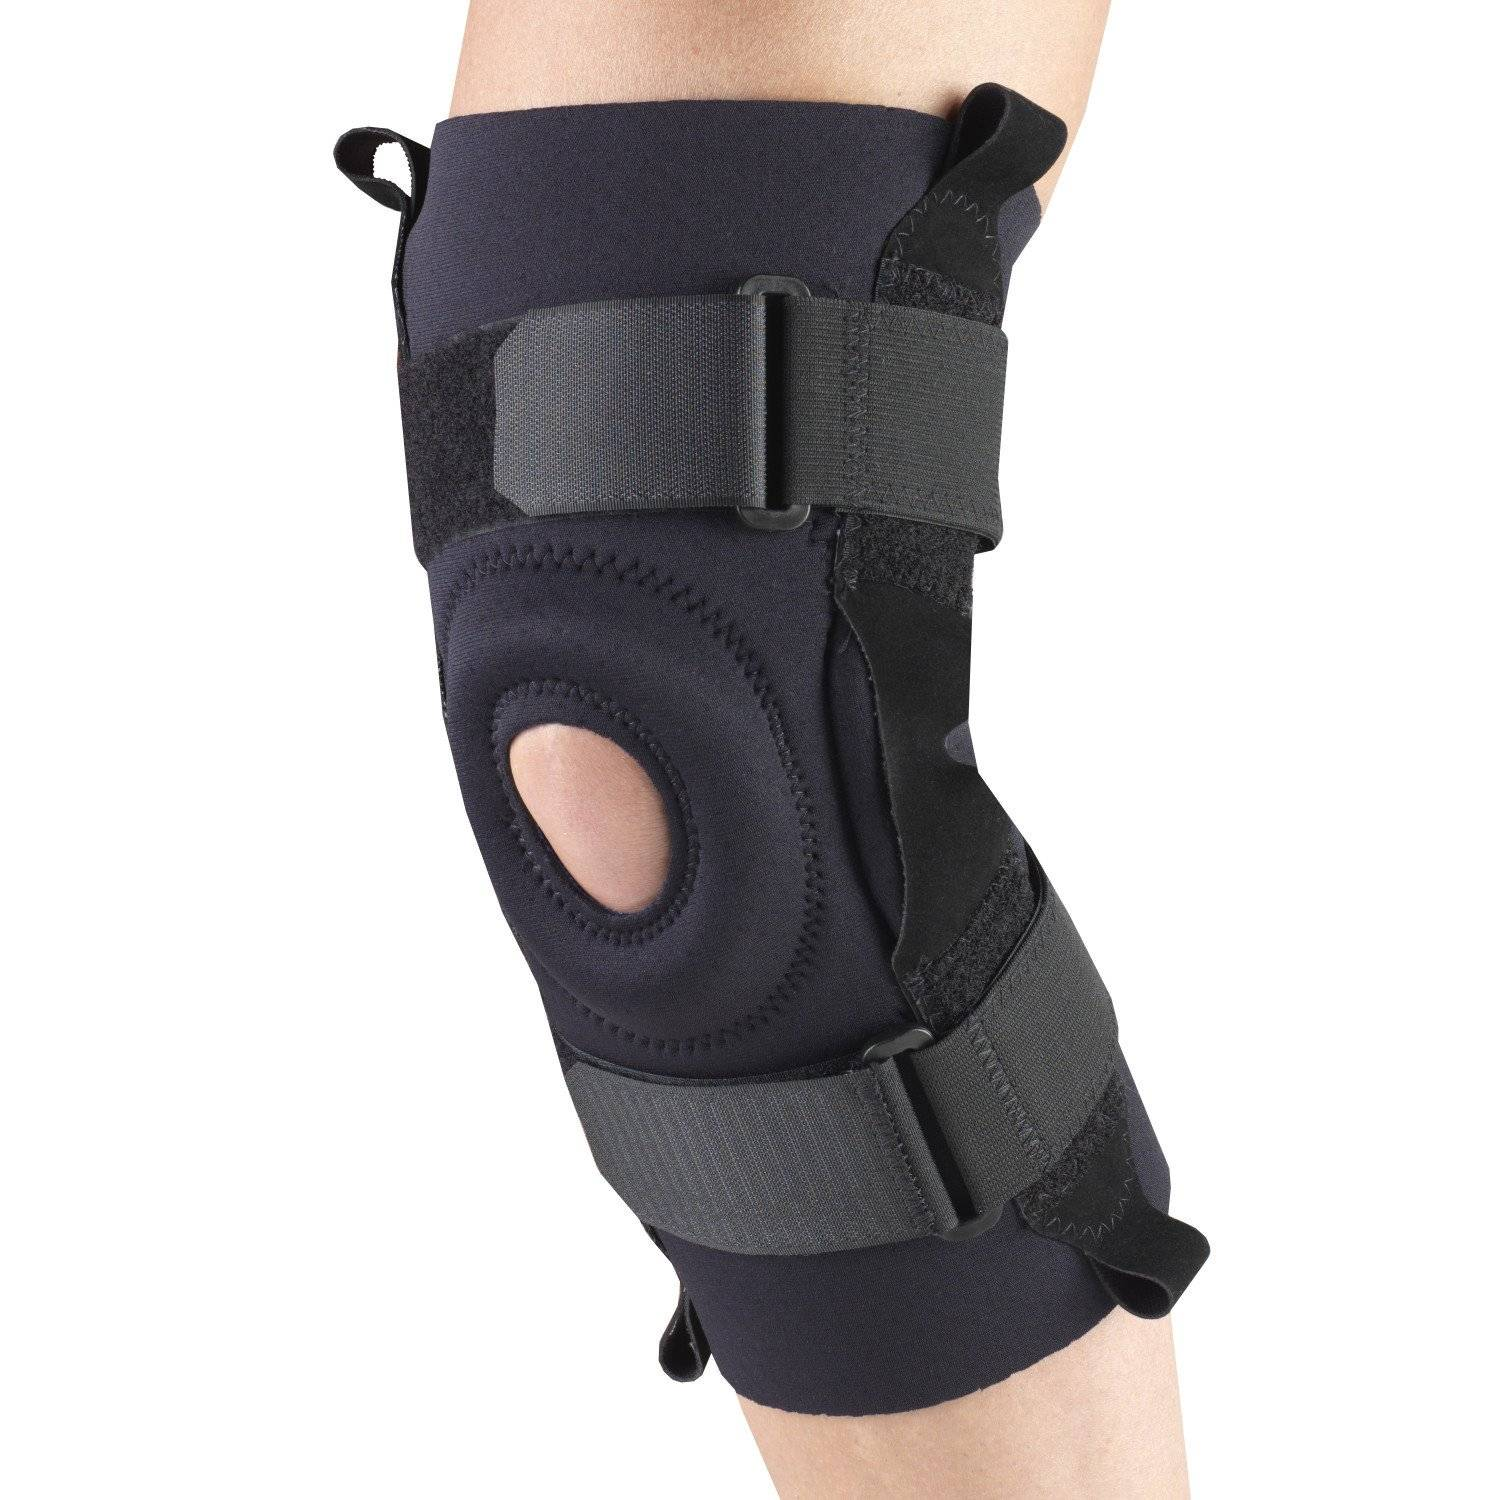 0310 / NEOPRENE KNEE STABILIZER - HINGED BARS